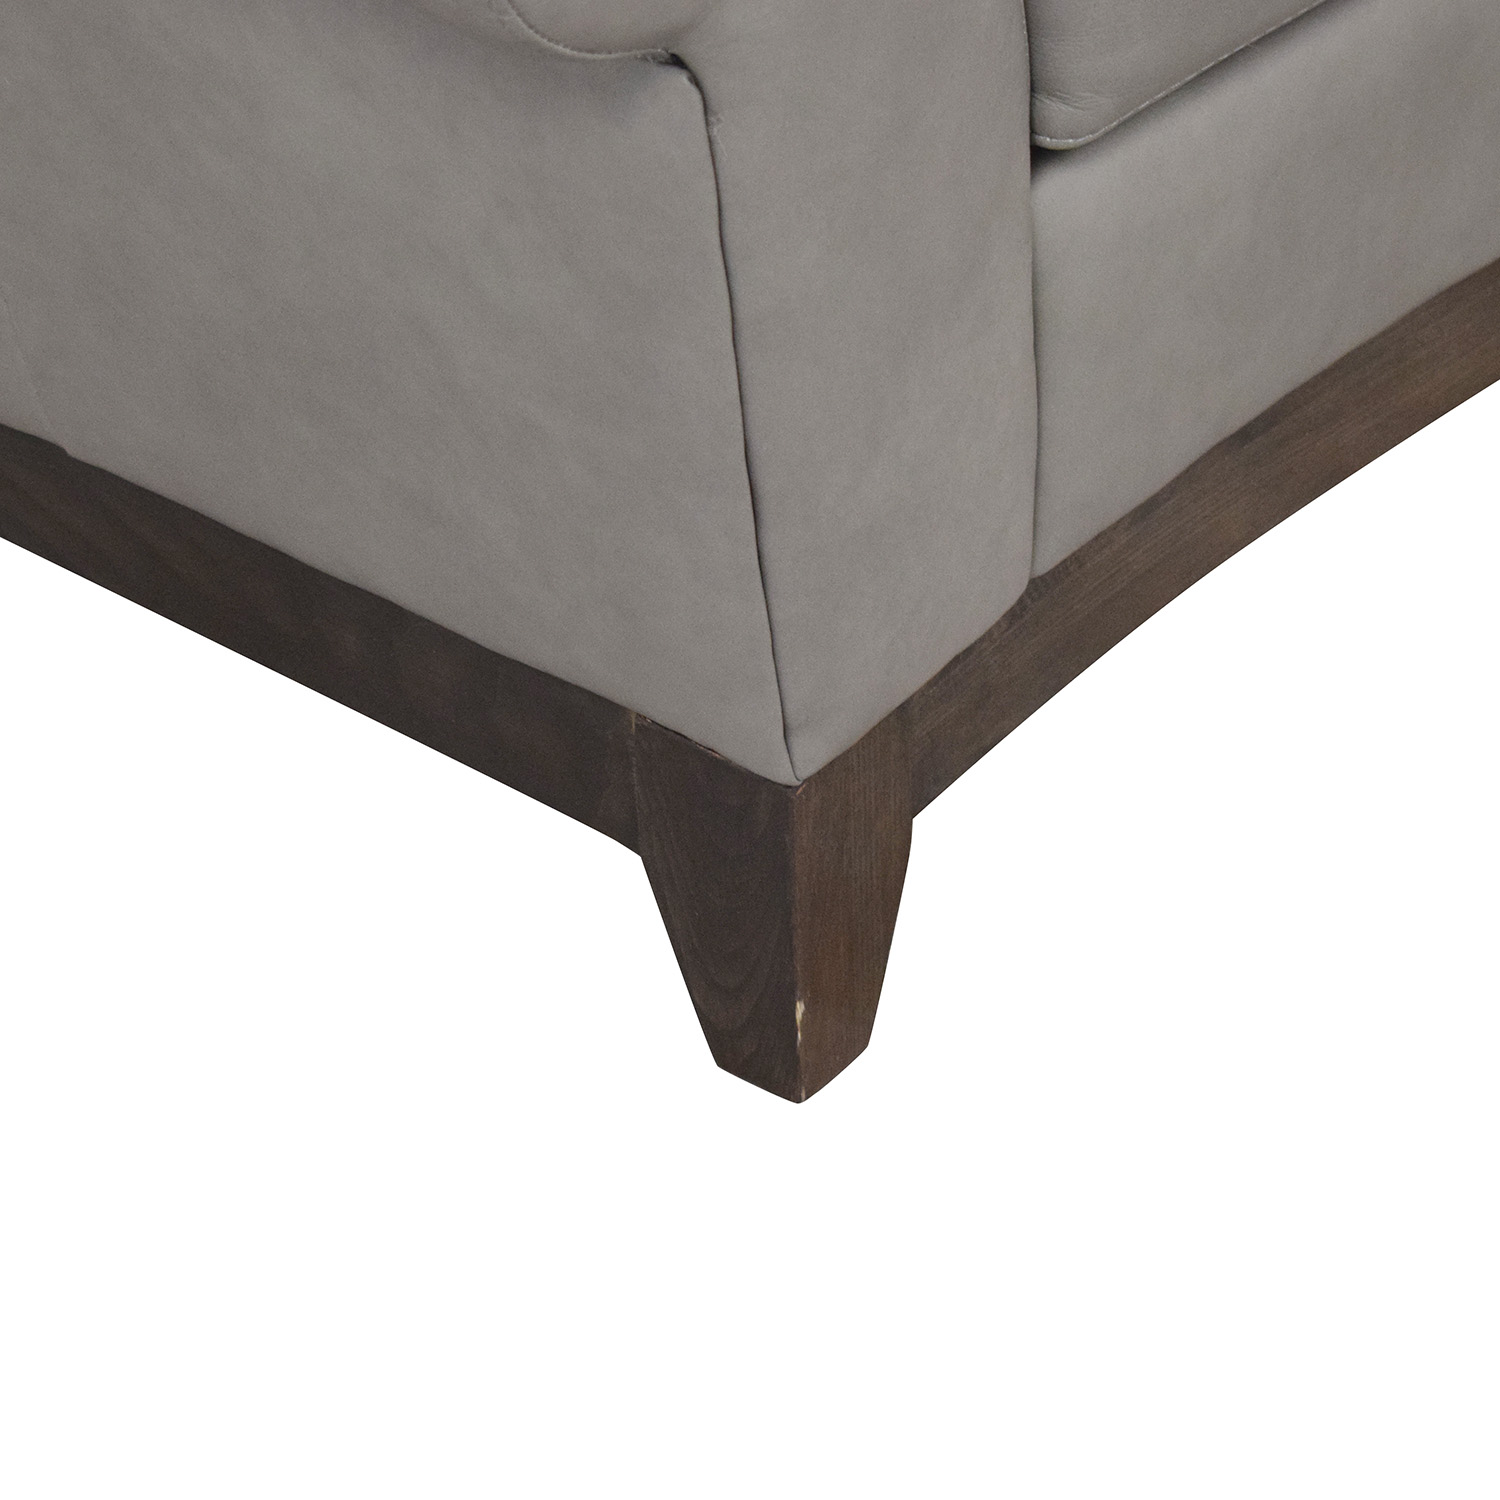 buy Elite Leather Company Elite Leather Company Curved Sofa online